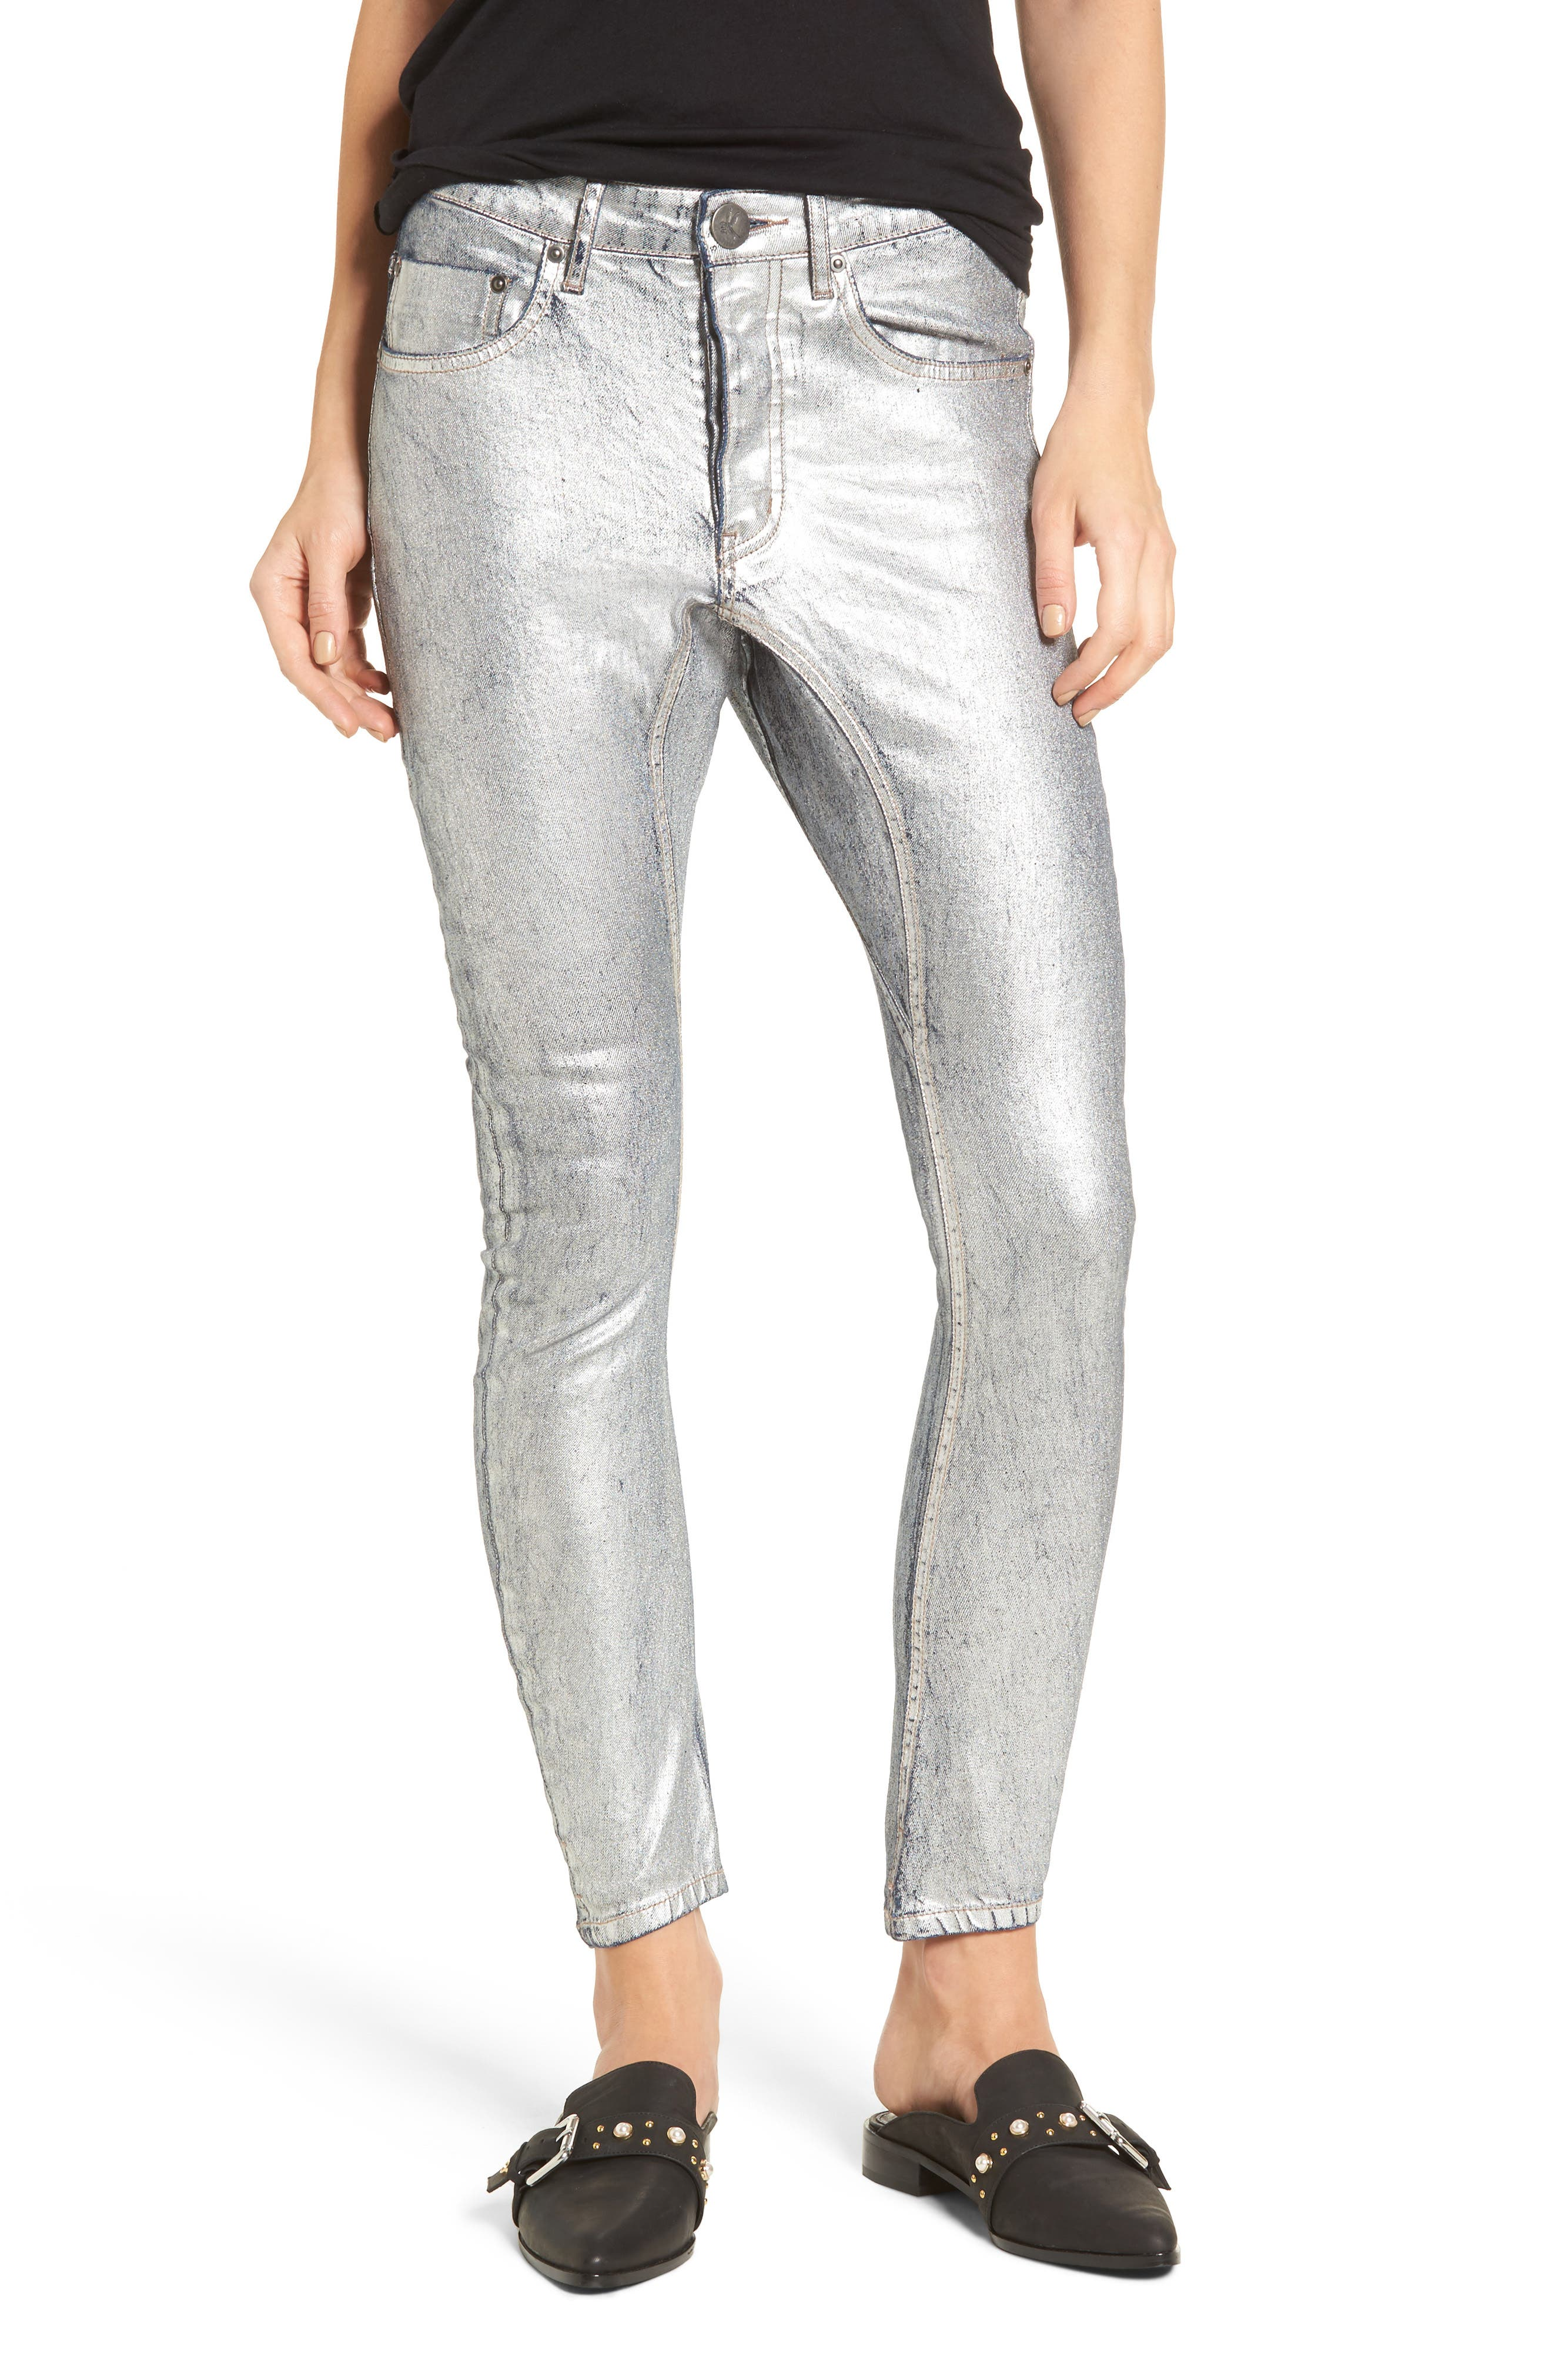 One Teaspoon Kidds Metallic Drop Crotch Skinny Jeans